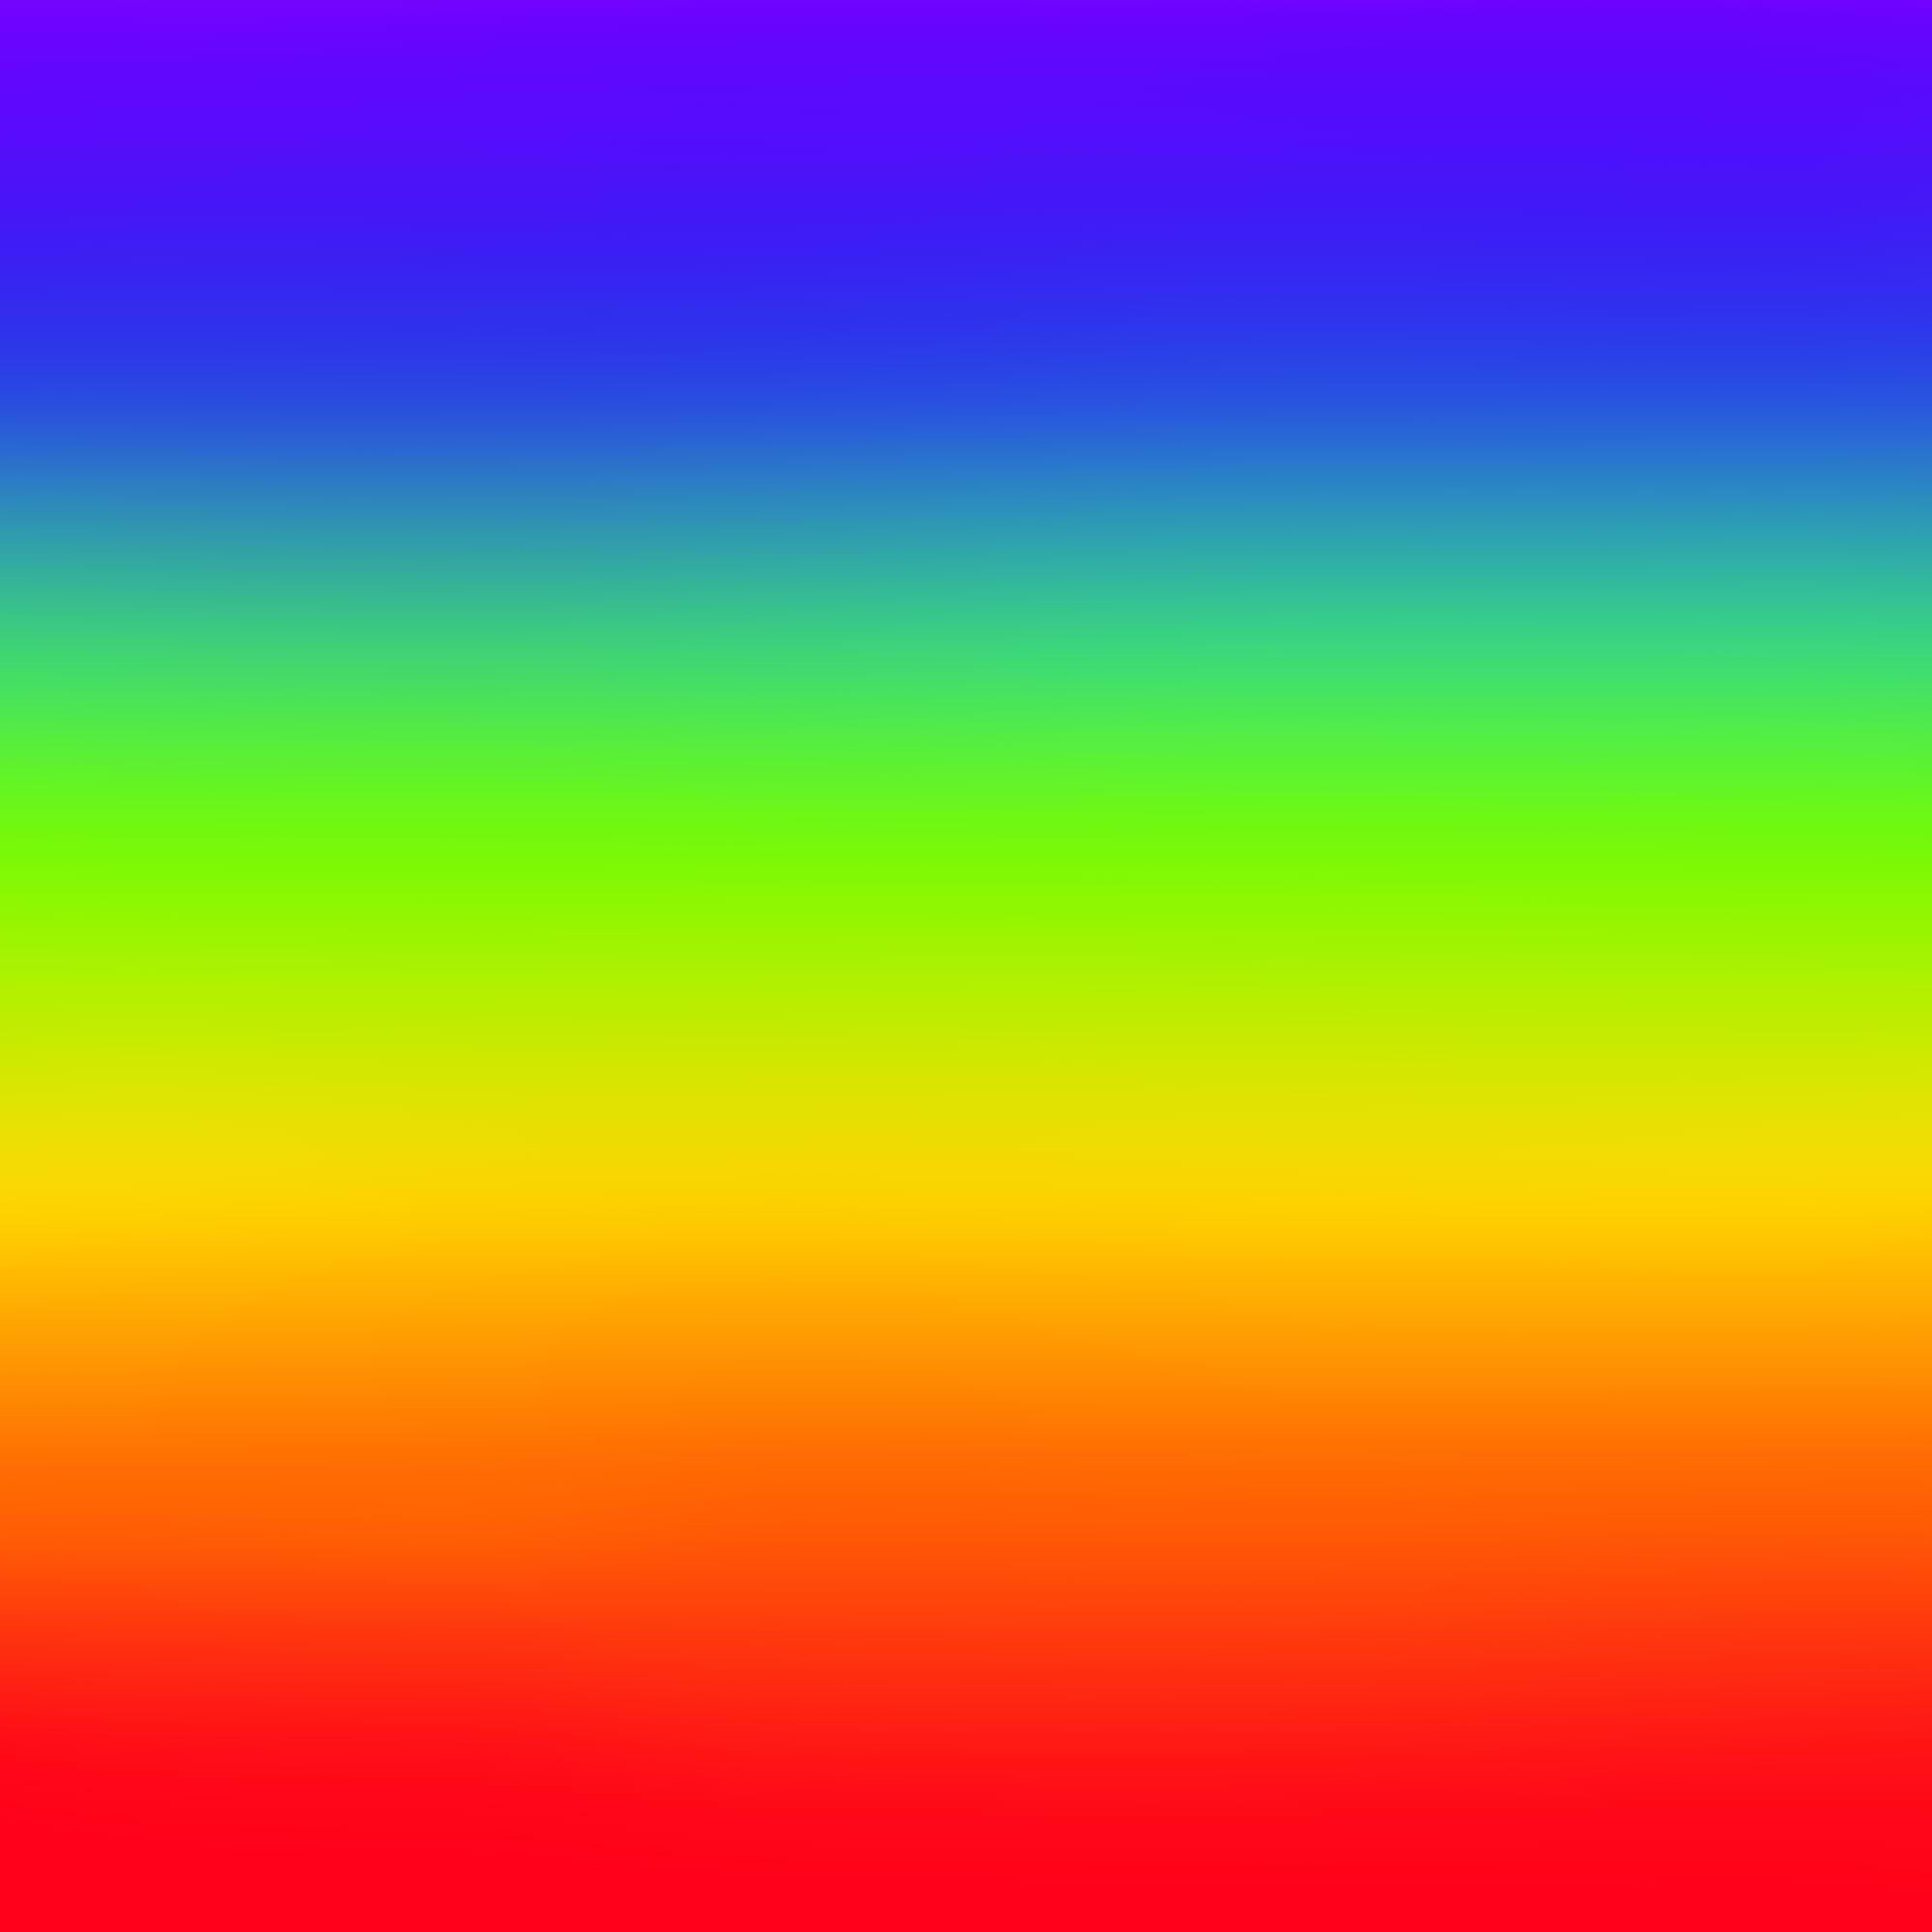 Rainbow Background ·① Download Free Awesome HD Backgrounds